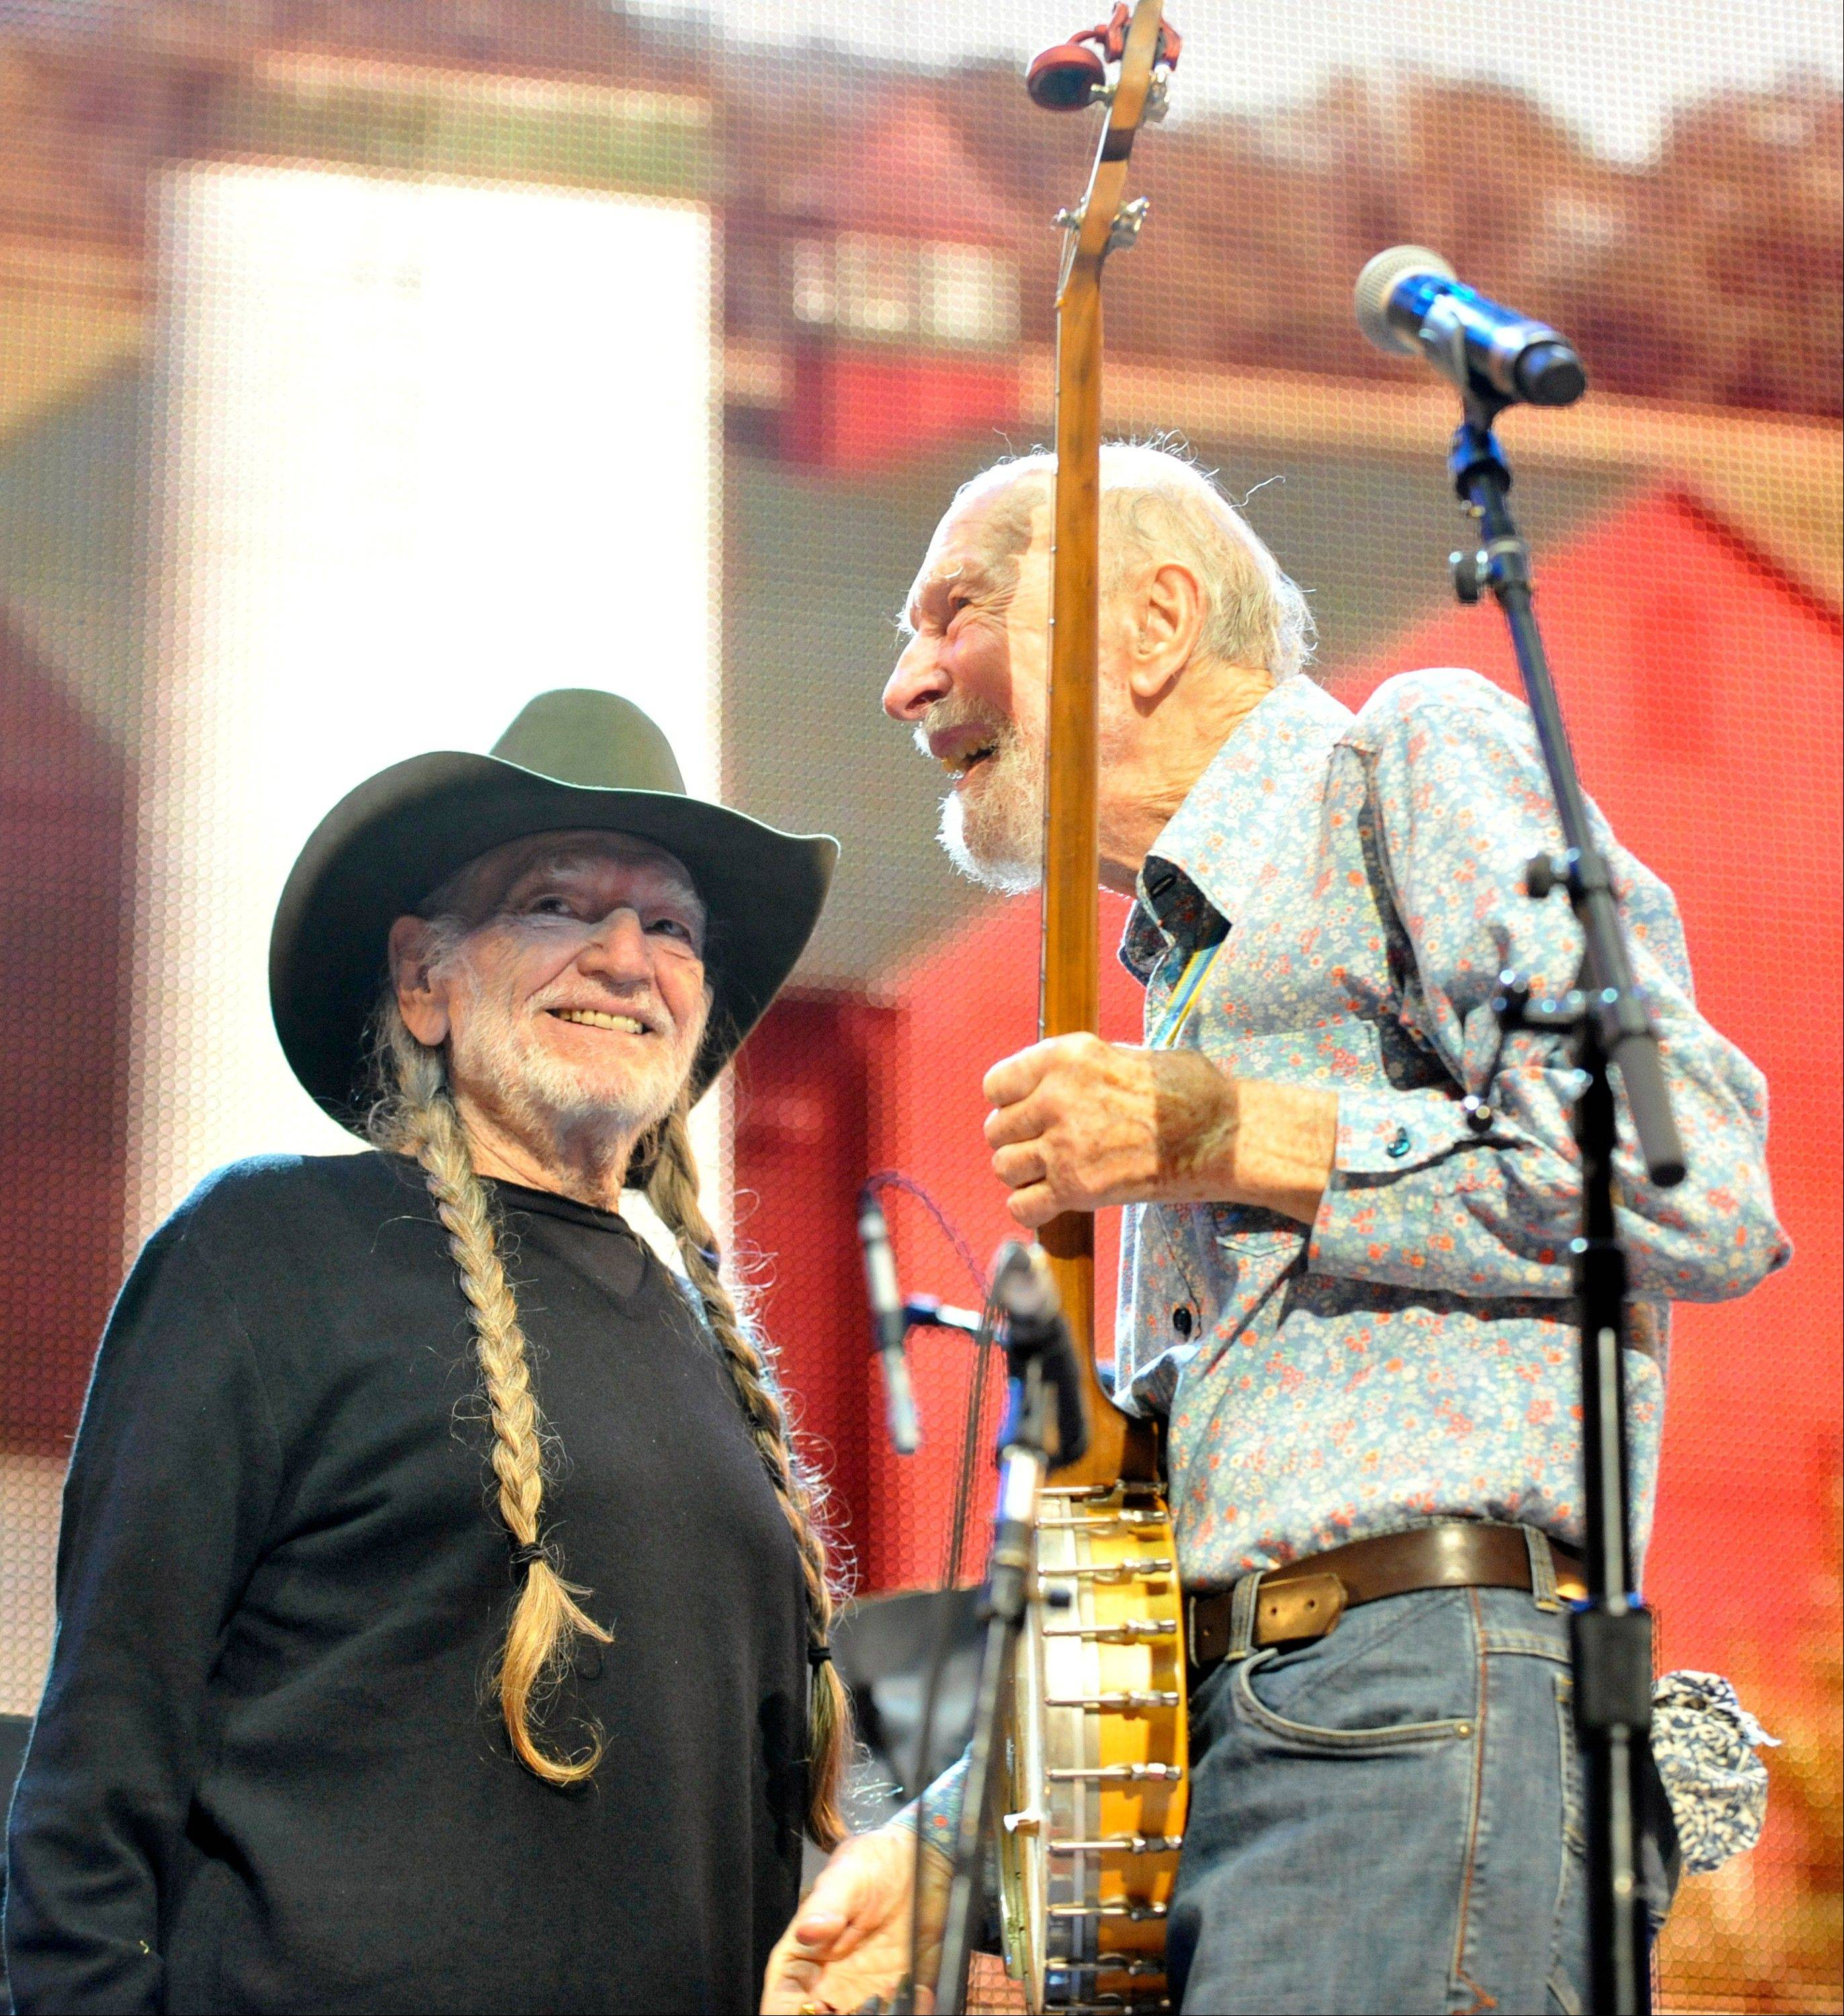 Pete Seeger, right, and Willie Nelson performed during the Farm Aid 2013 concert at Saratoga Performing Arts Center in Saratoga Springs, N.Y. Seeger died Monday at age 94.